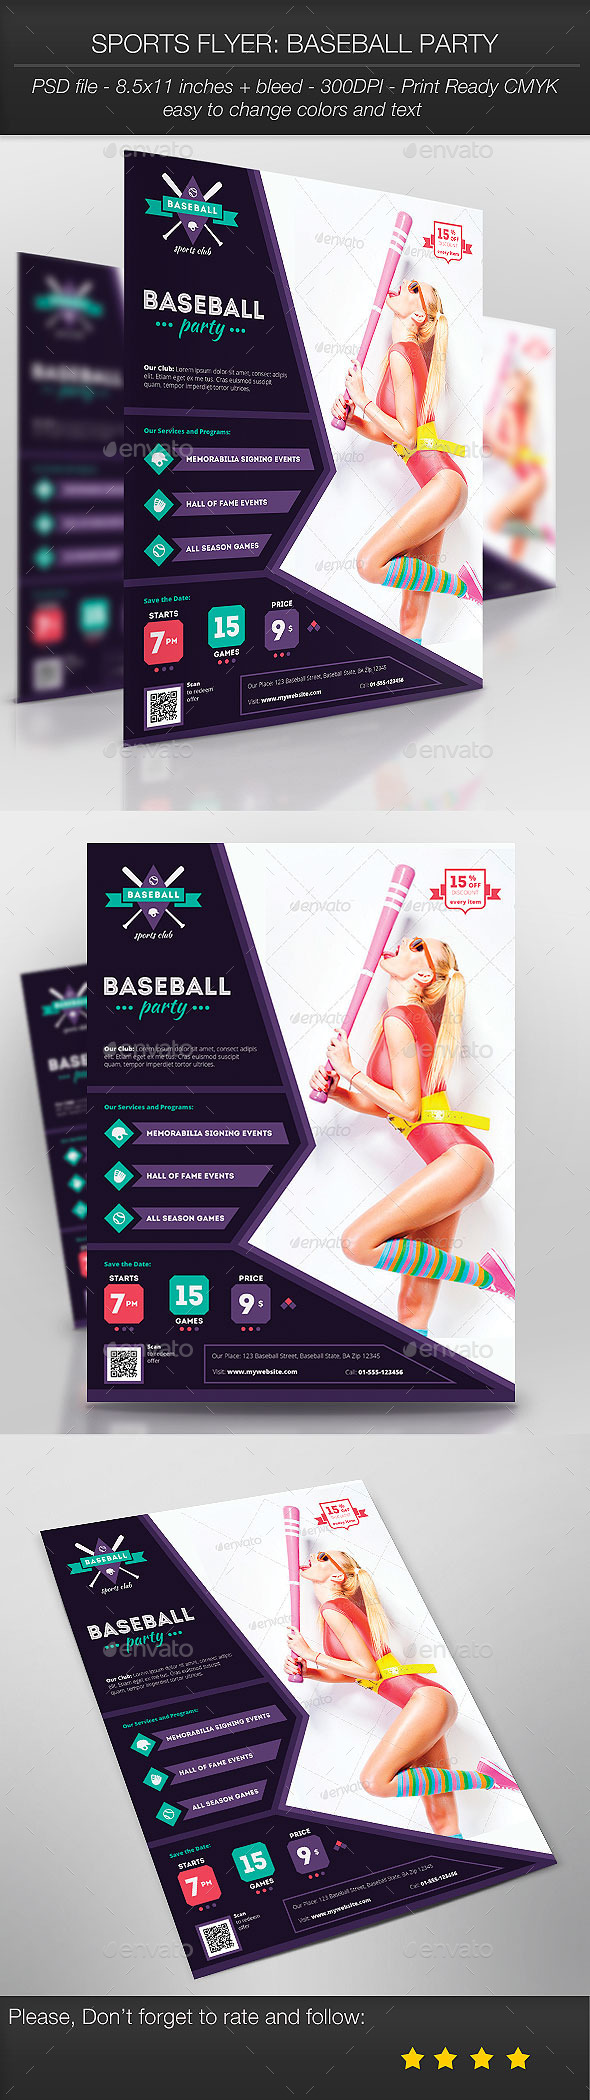 Sports Flyer: Baseball Party - Sports Events